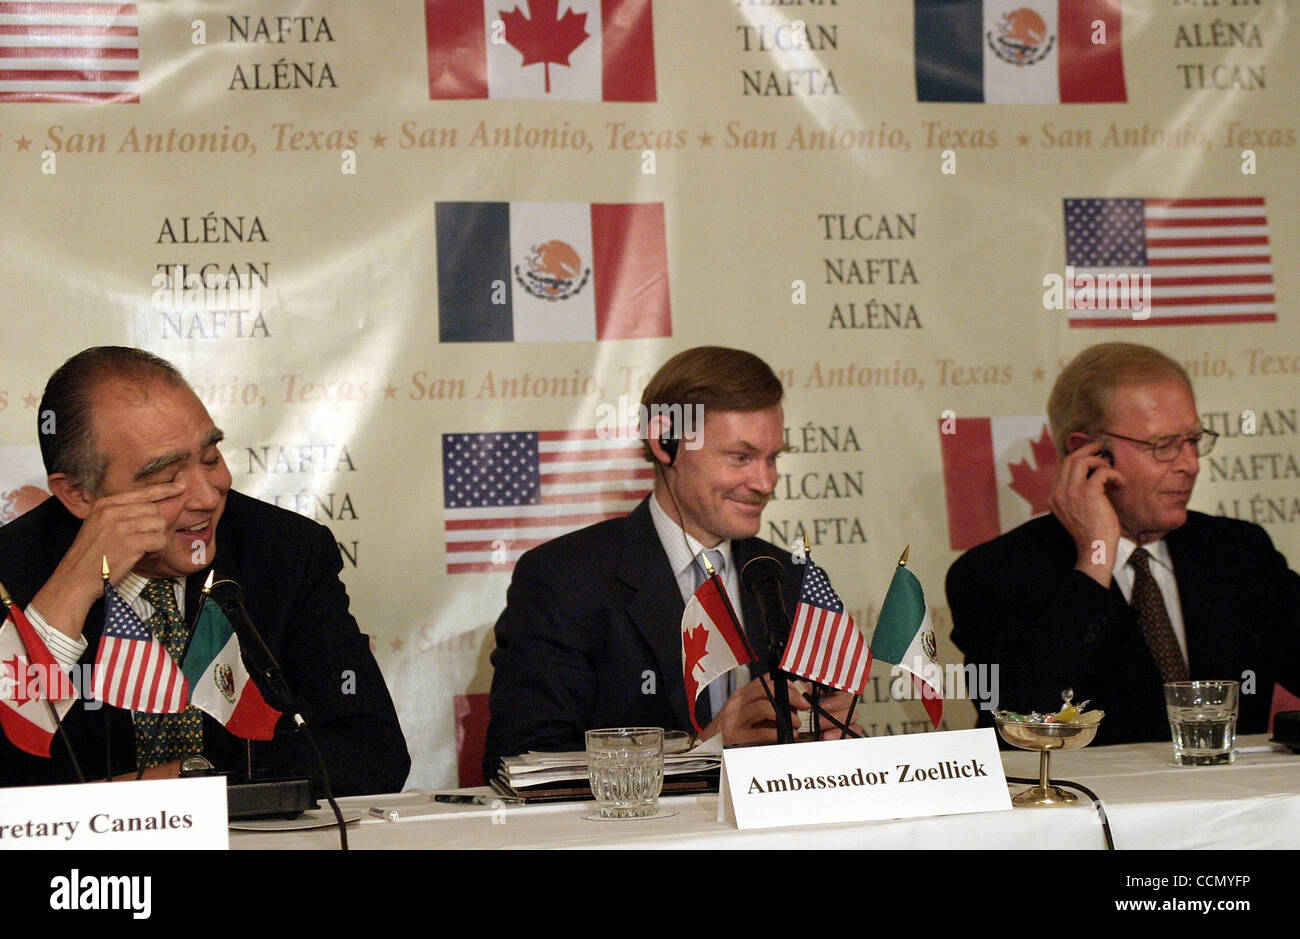 Bus Nafta 071604 Meeting After Ten Years Of The North American